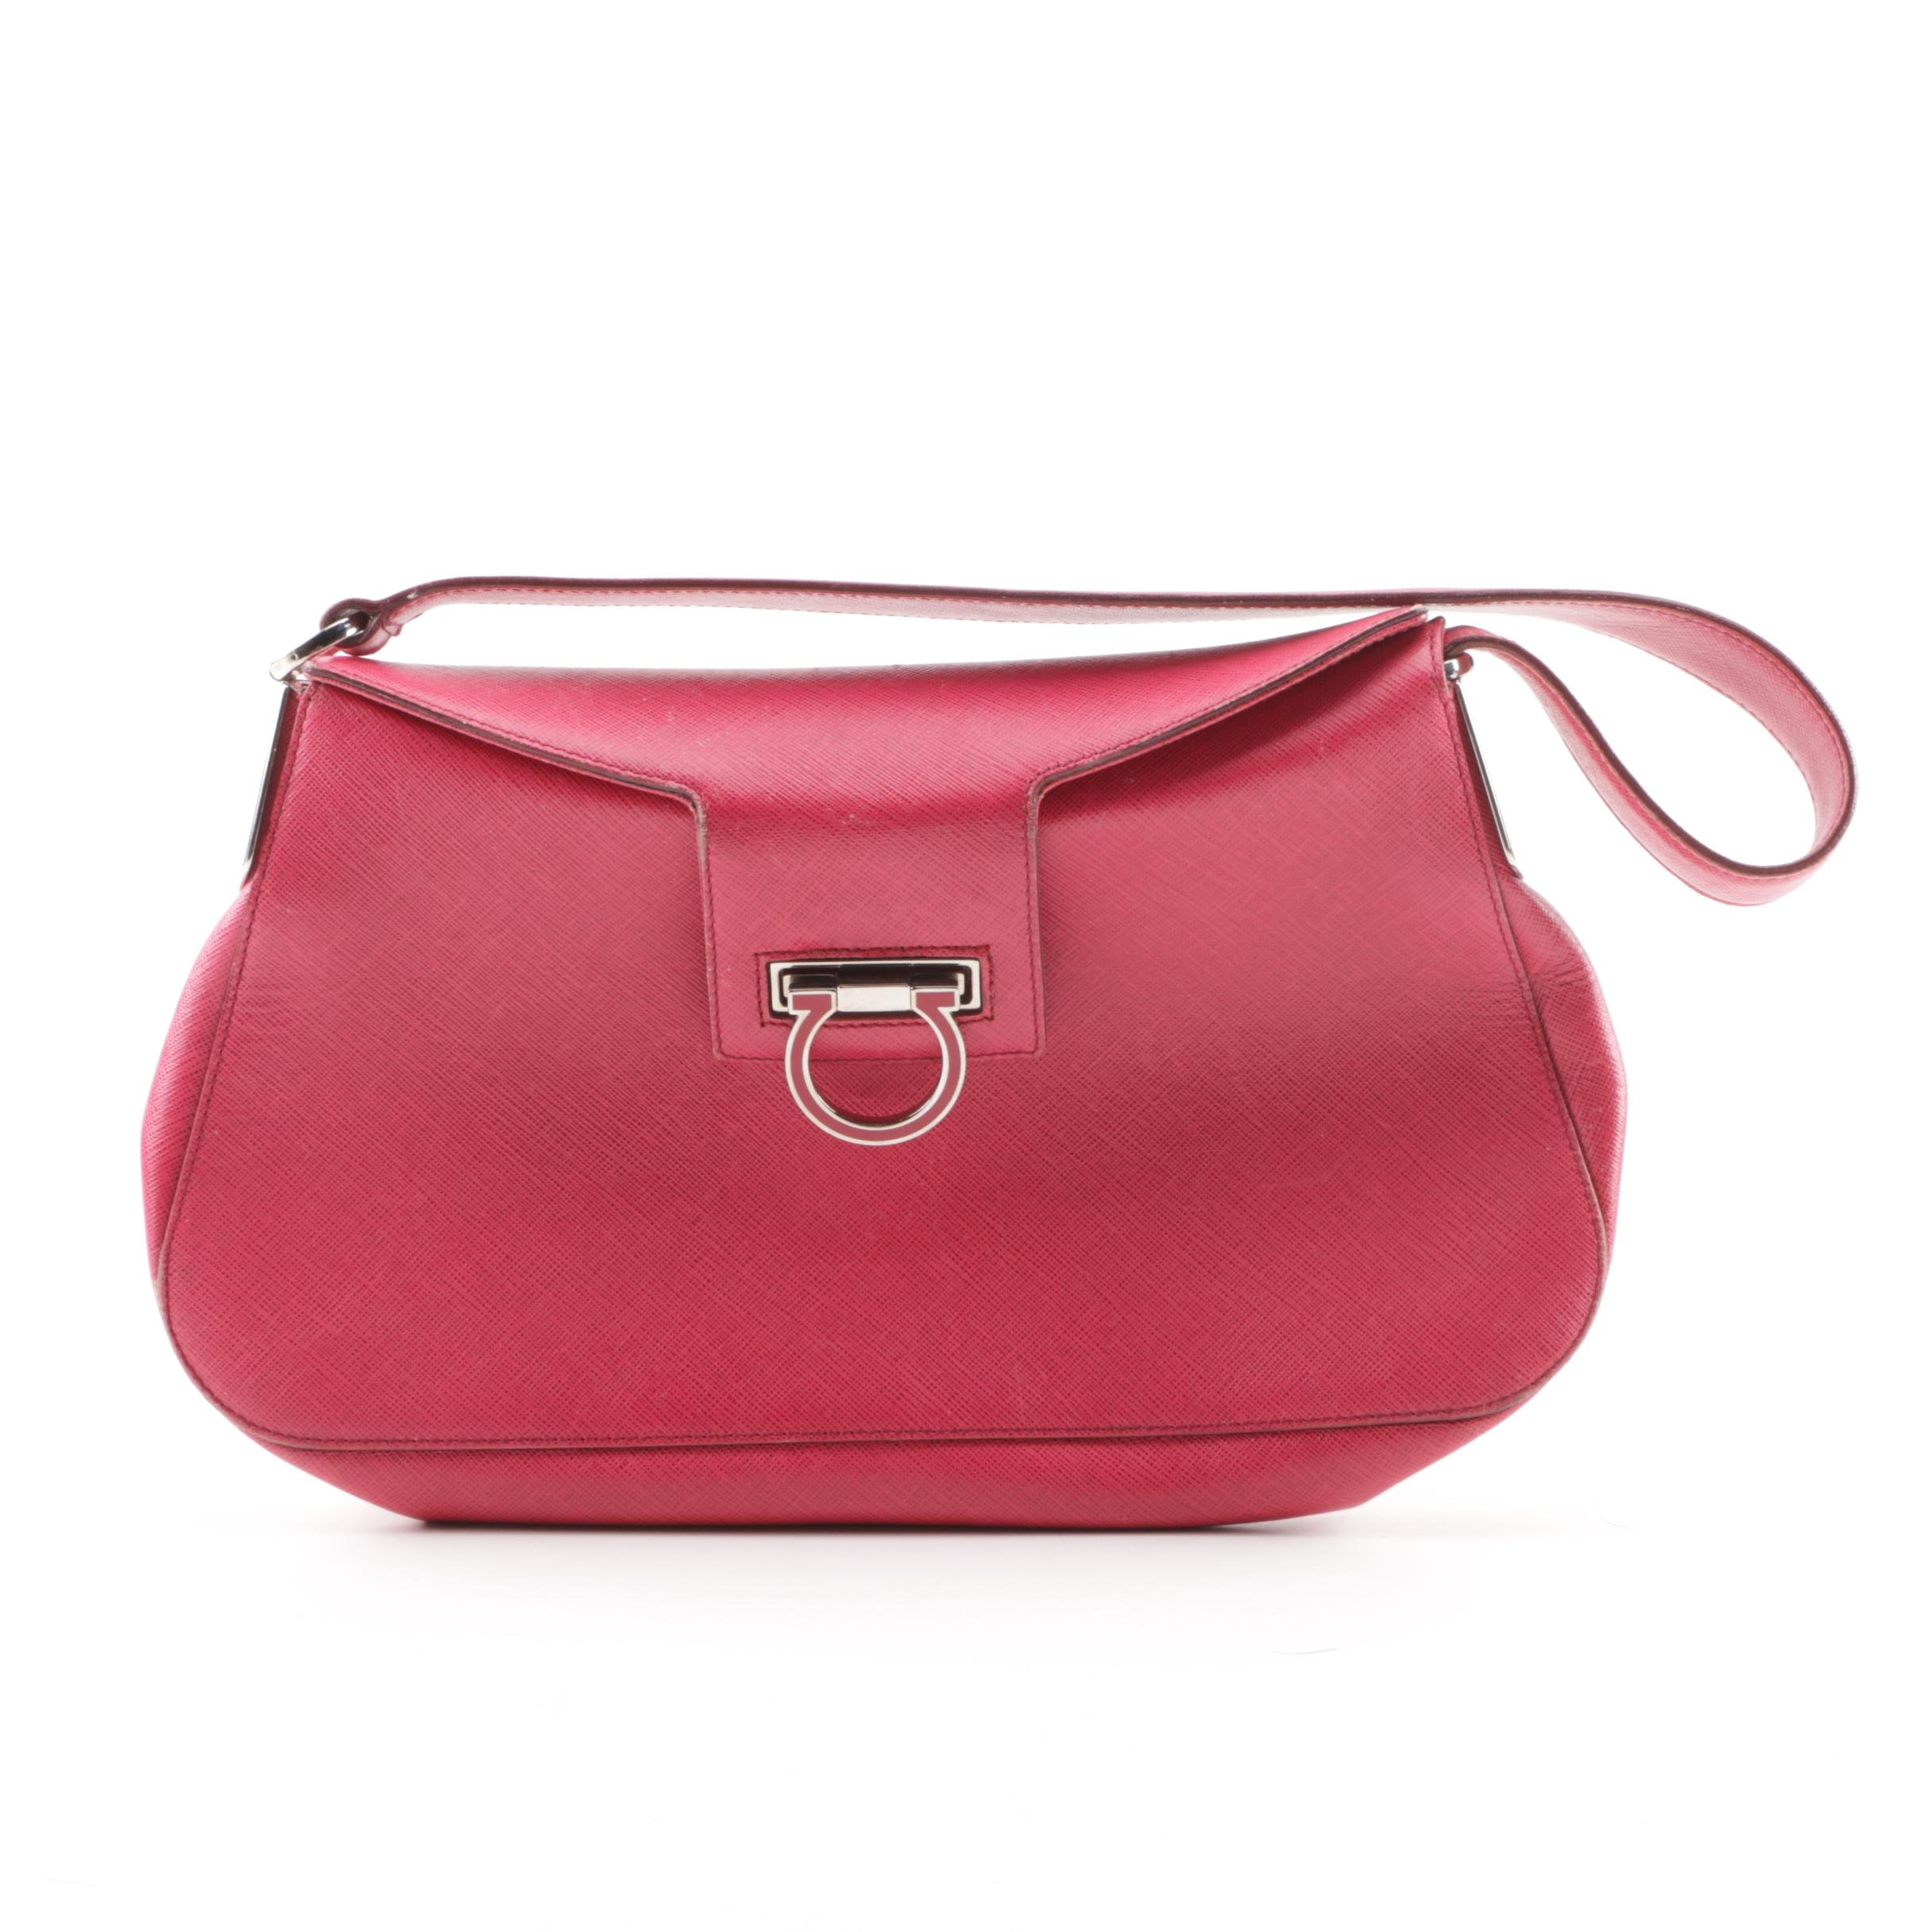 Salvatore Ferragamo Fuchsia Crossgrain Leather Shoulder Bag